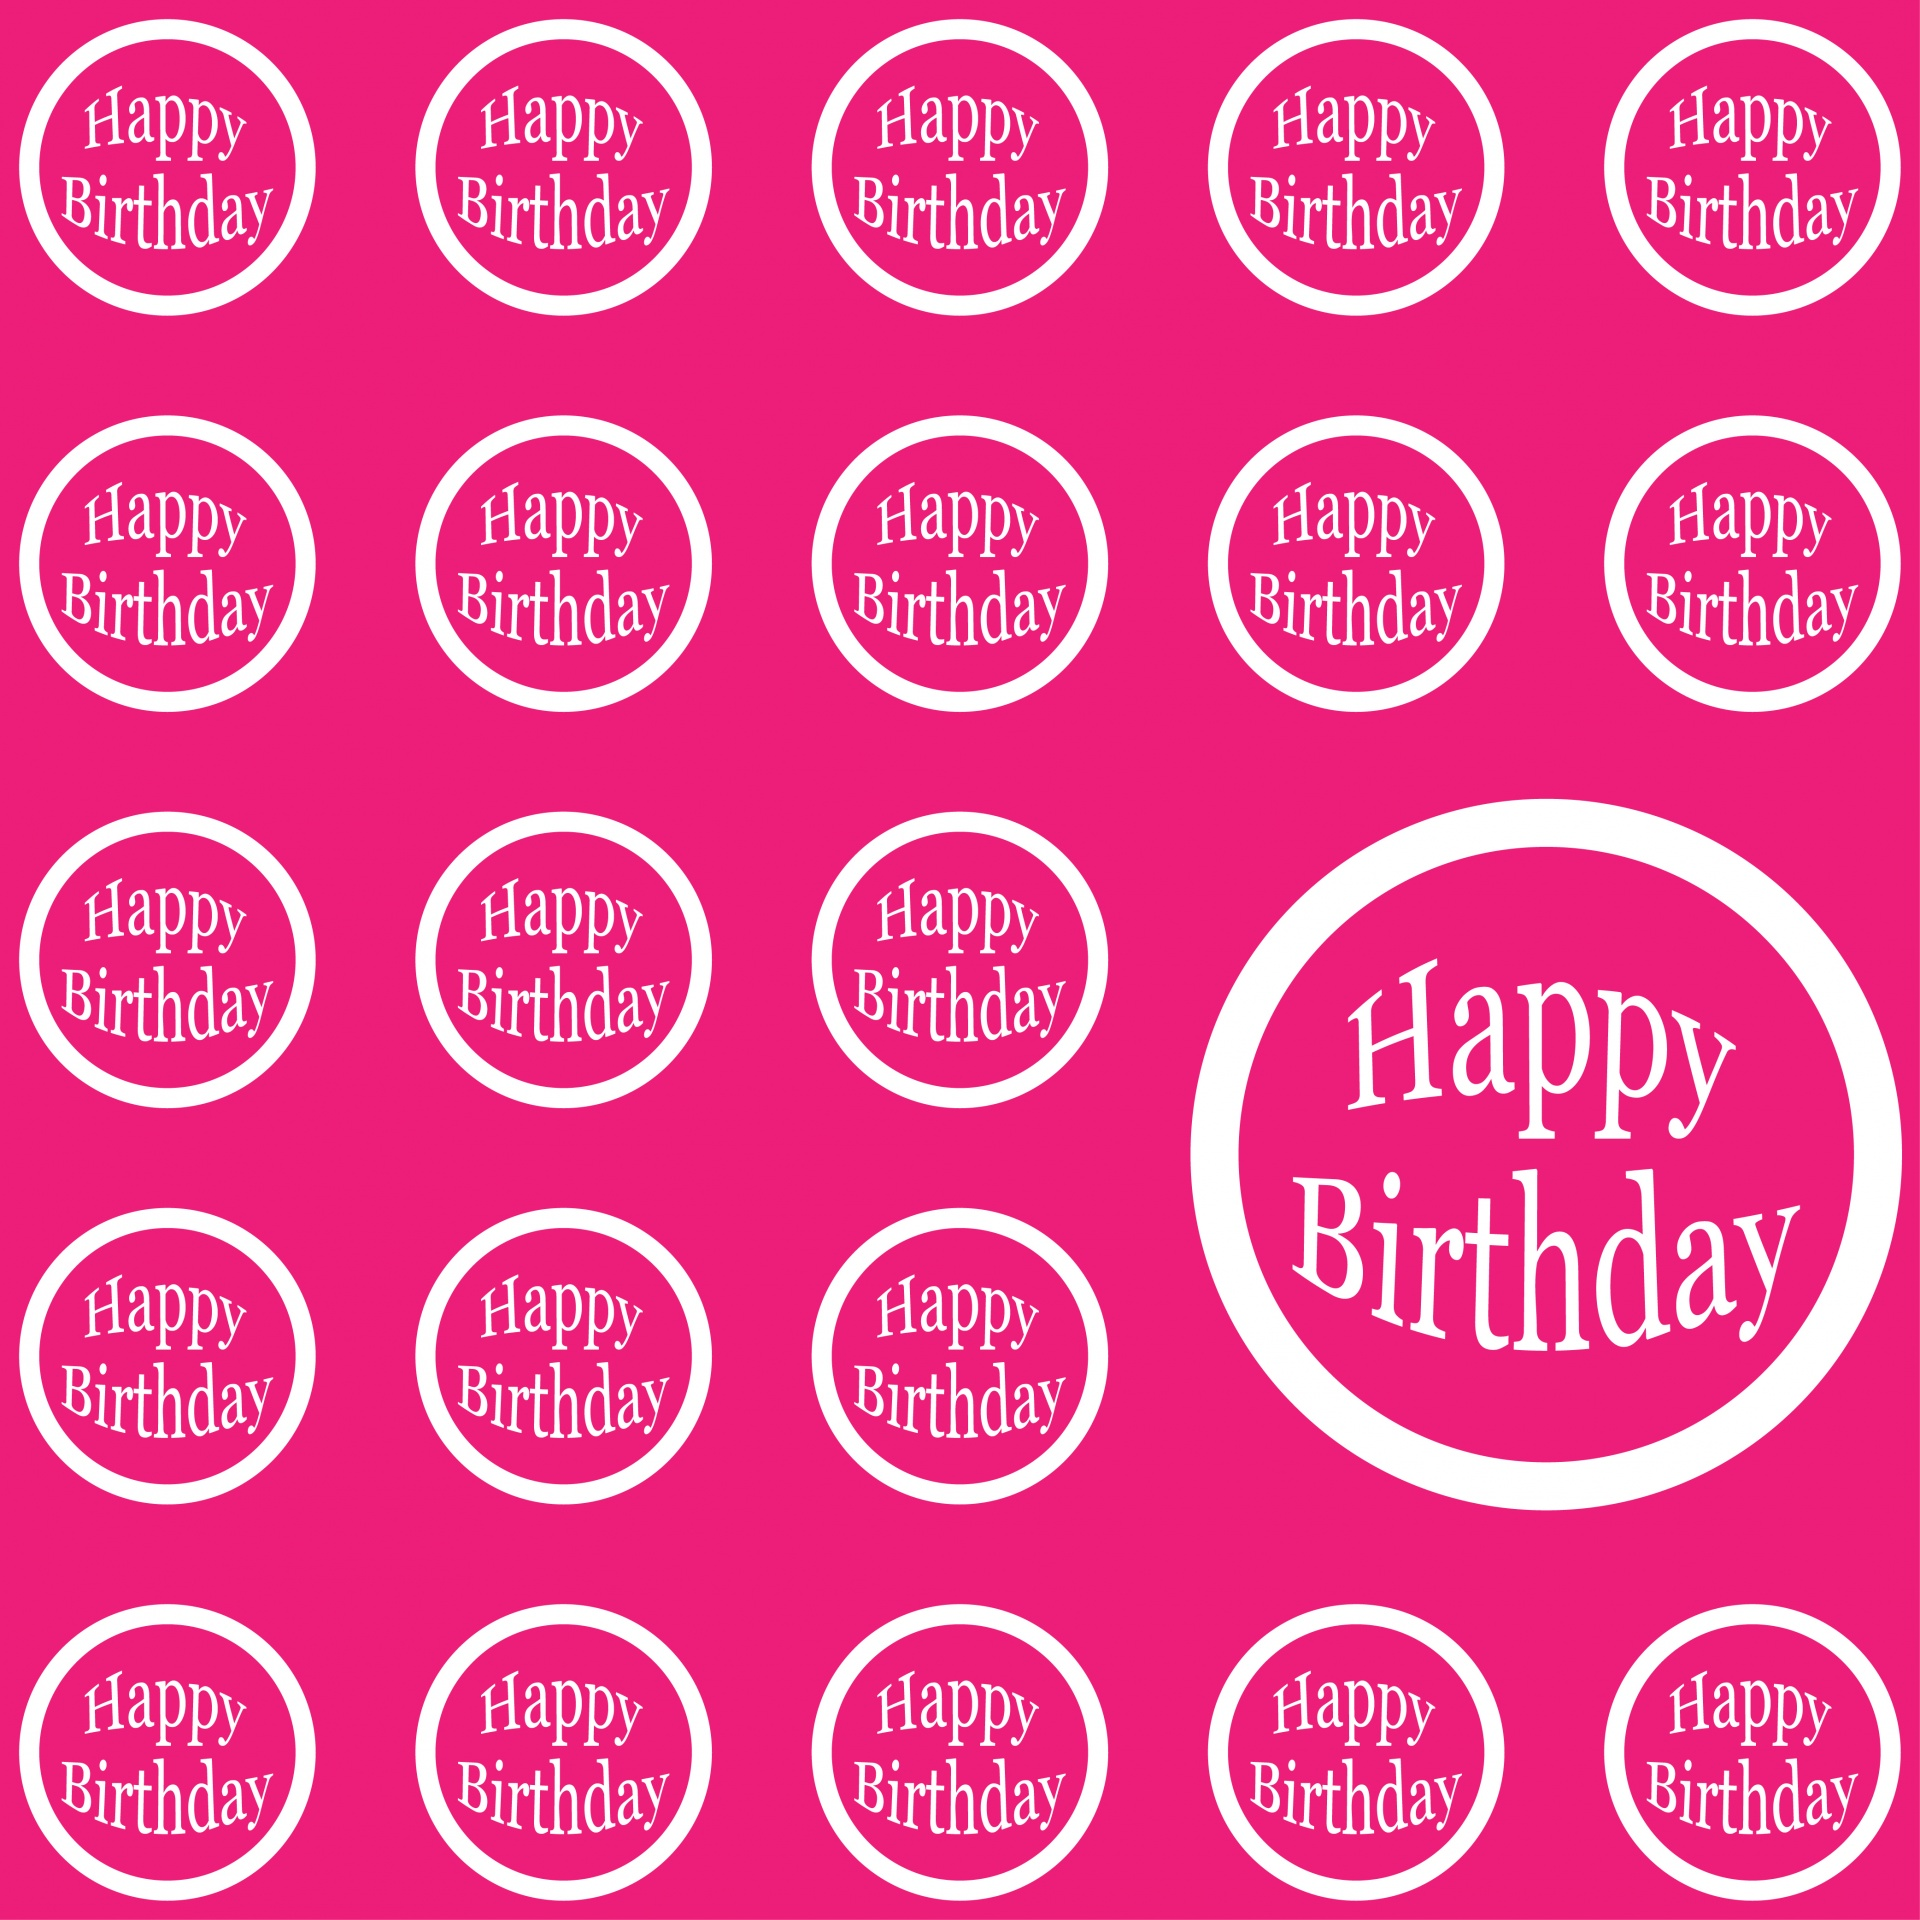 Happy Birthday Wallpaper Background Free Stock Photo Public Domain Pictures